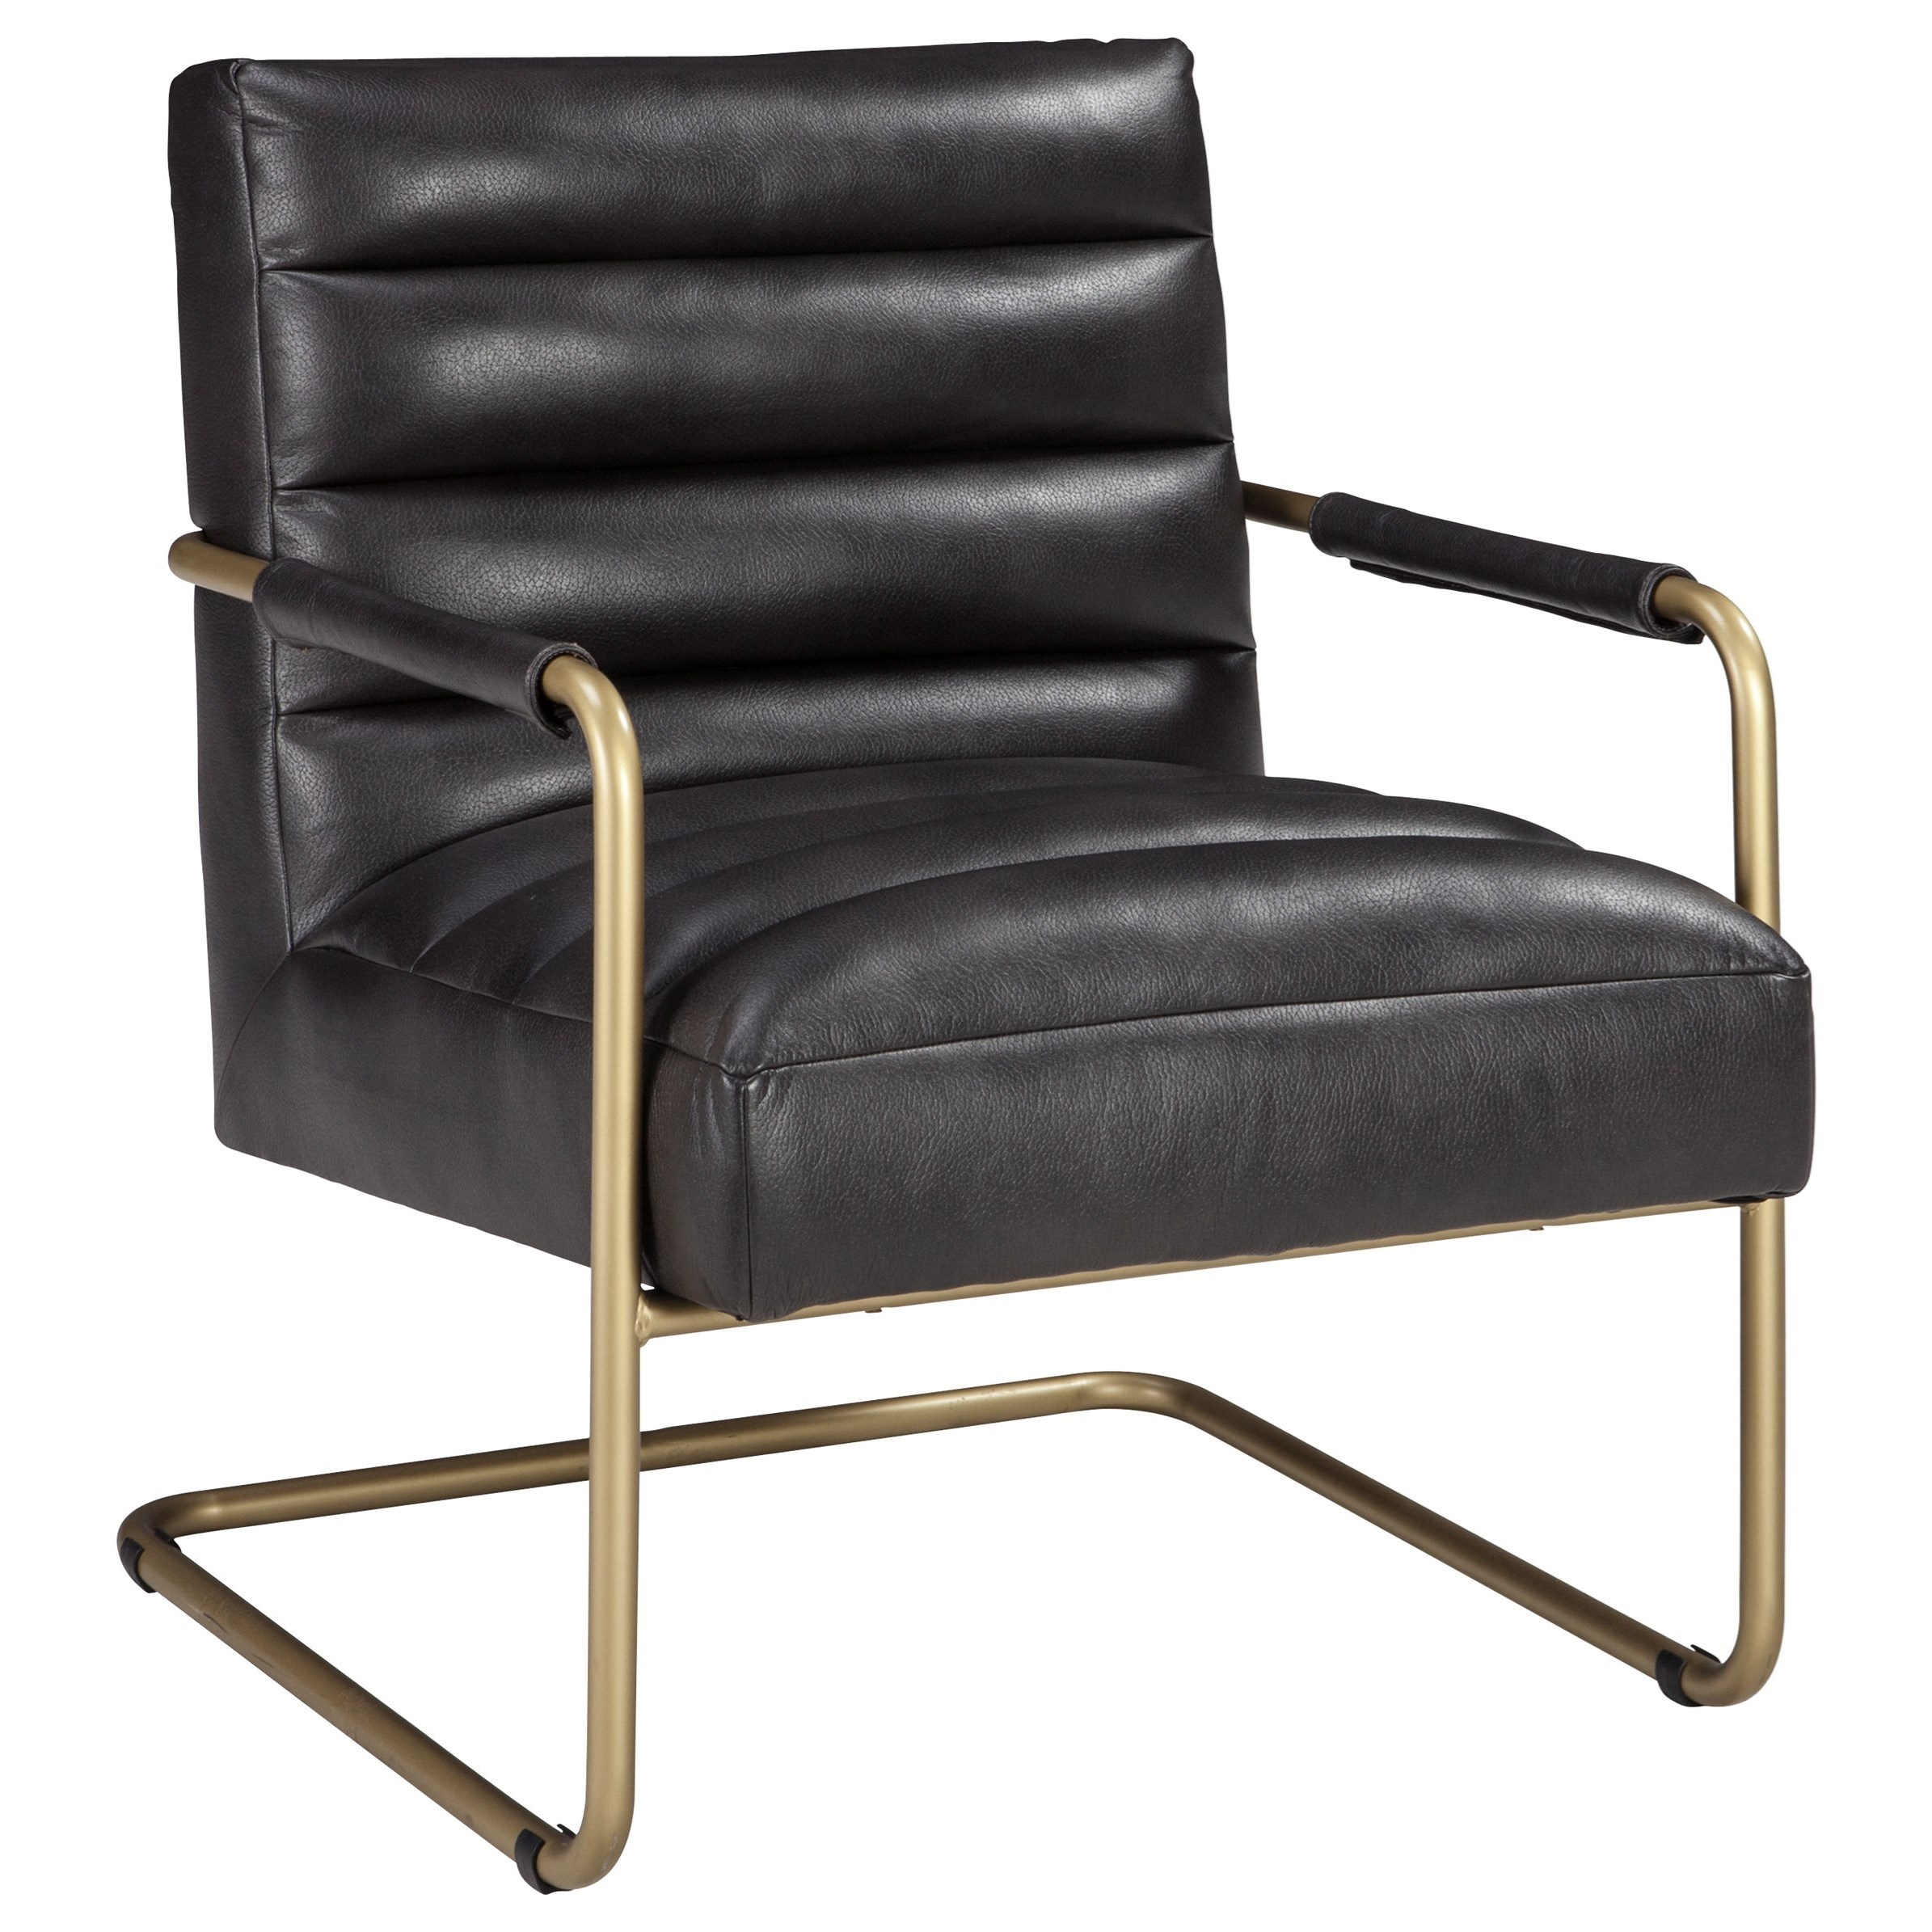 Signature Design by Ashley Hackley Accent Chair - Item Number: A3000024